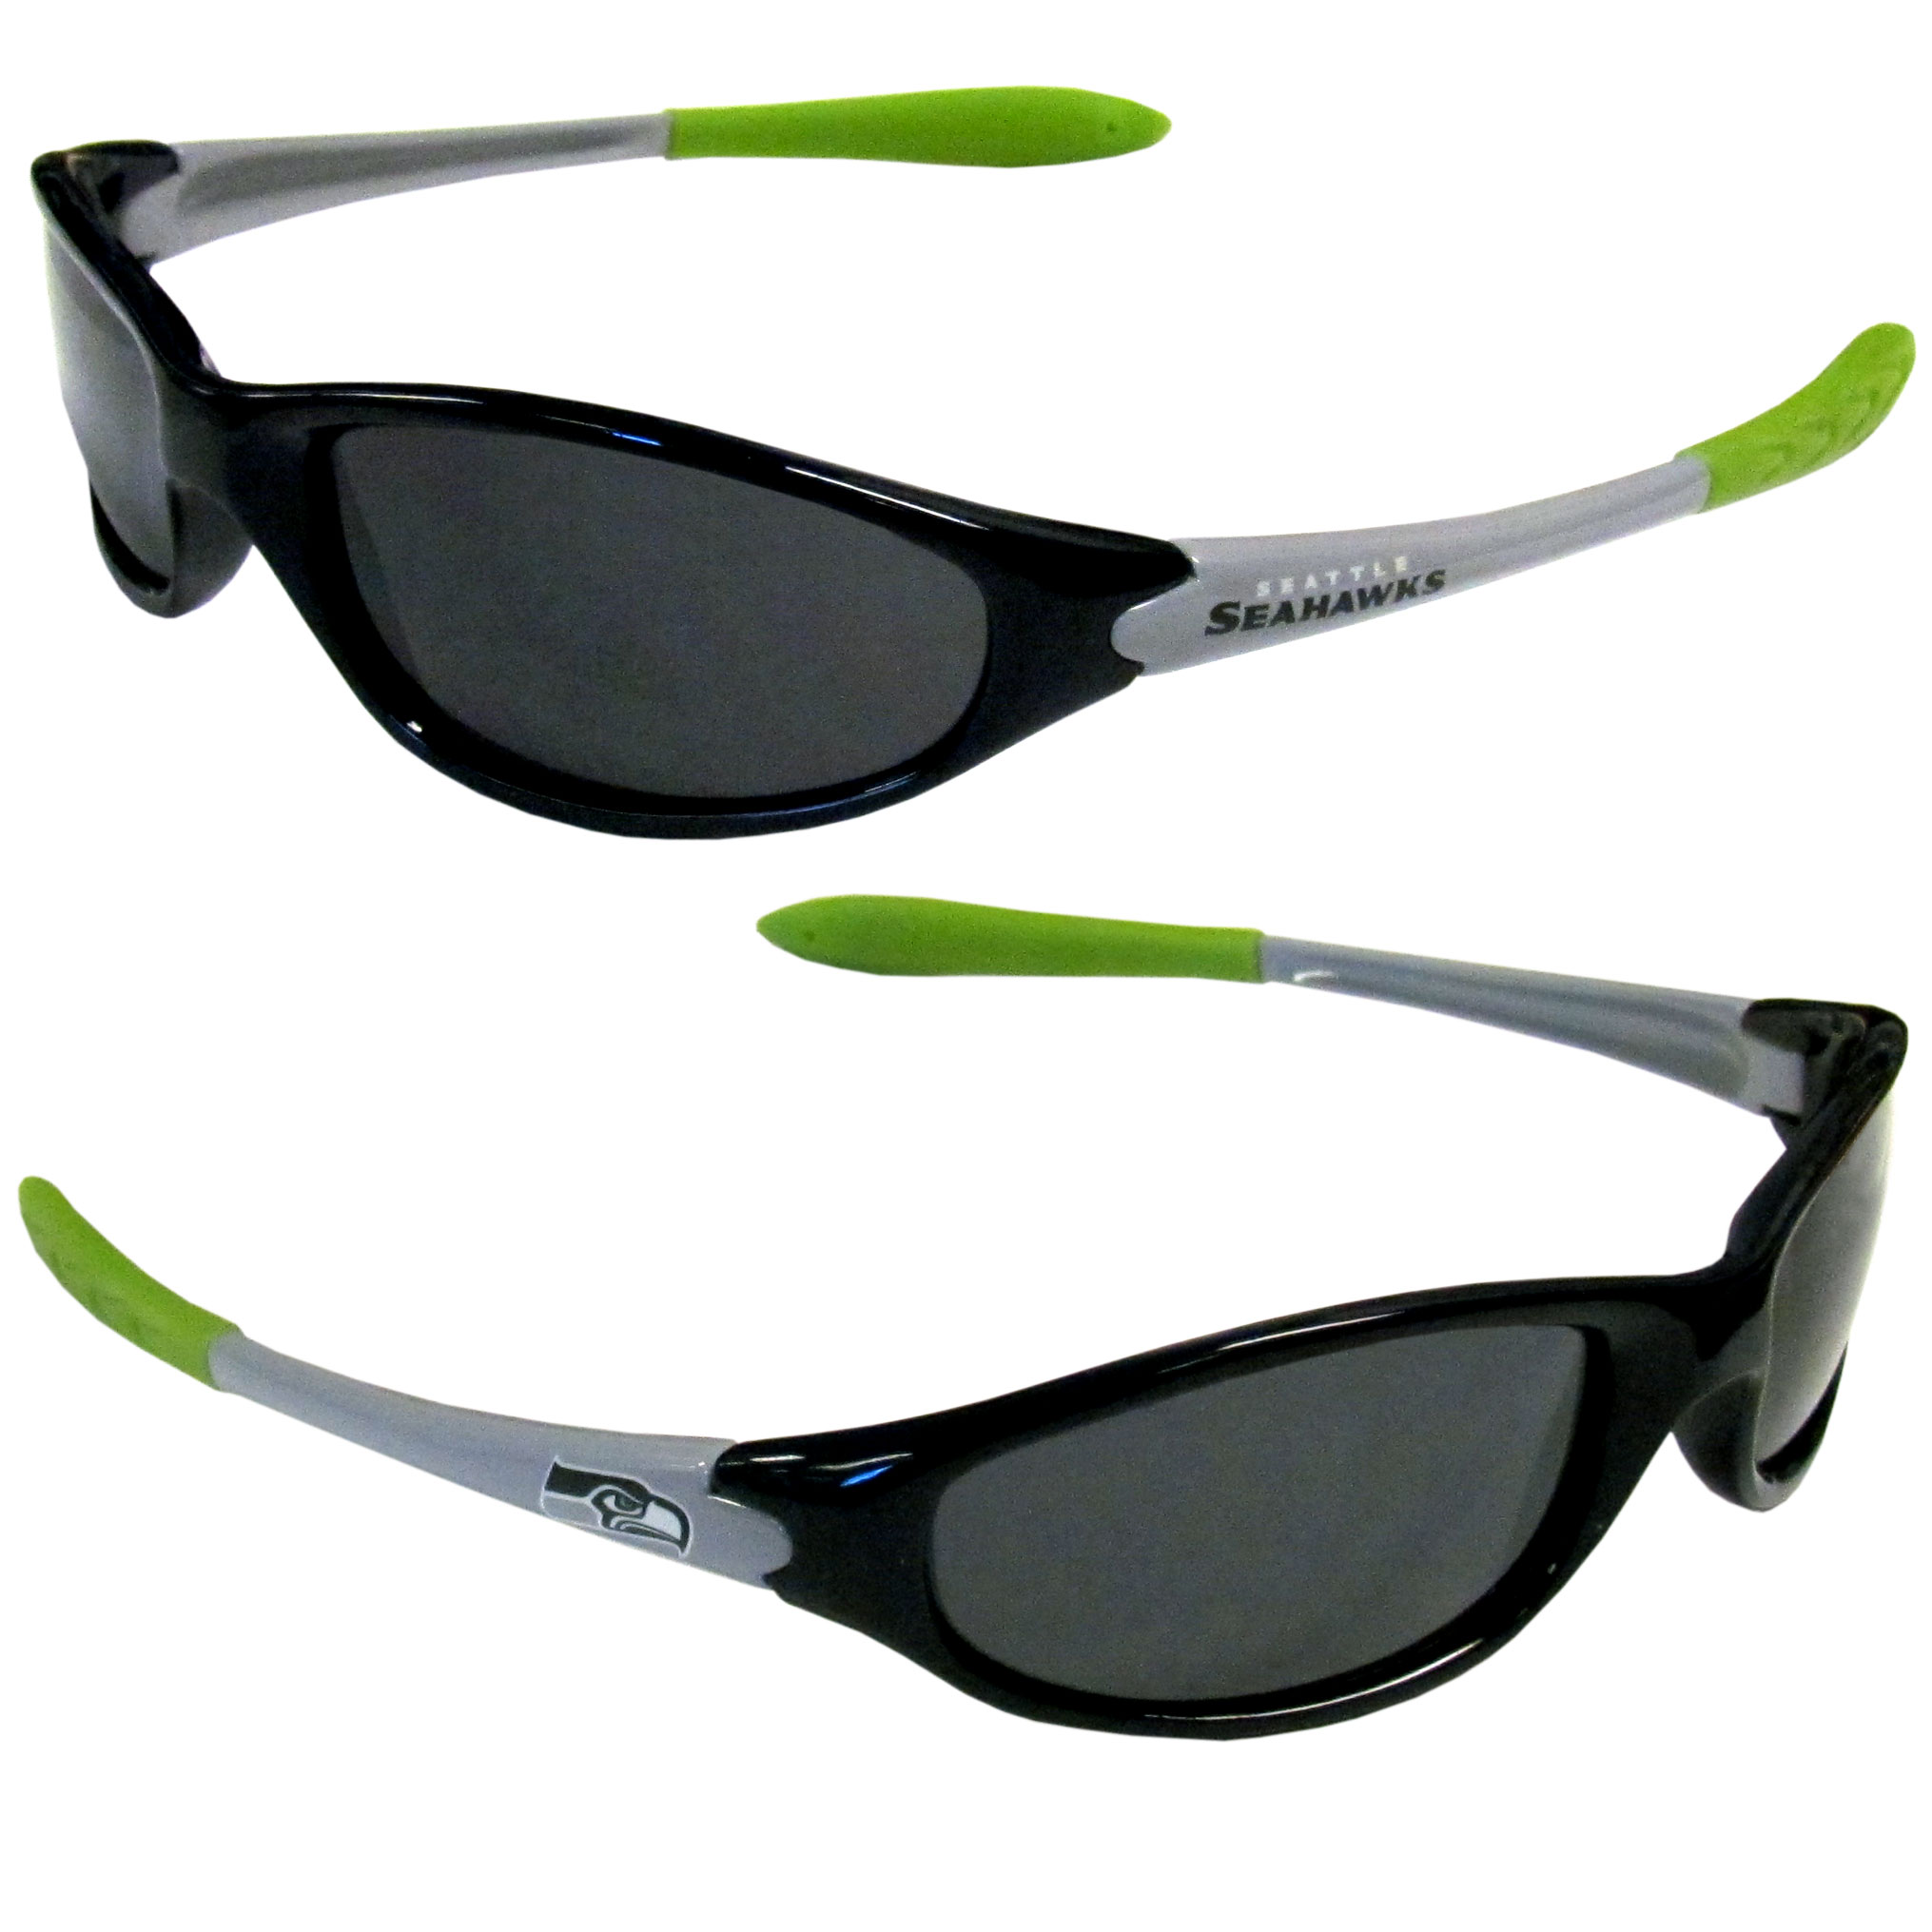 Seattle Seahawks Official NFL Team Sunglasses by Siskiyou 034367